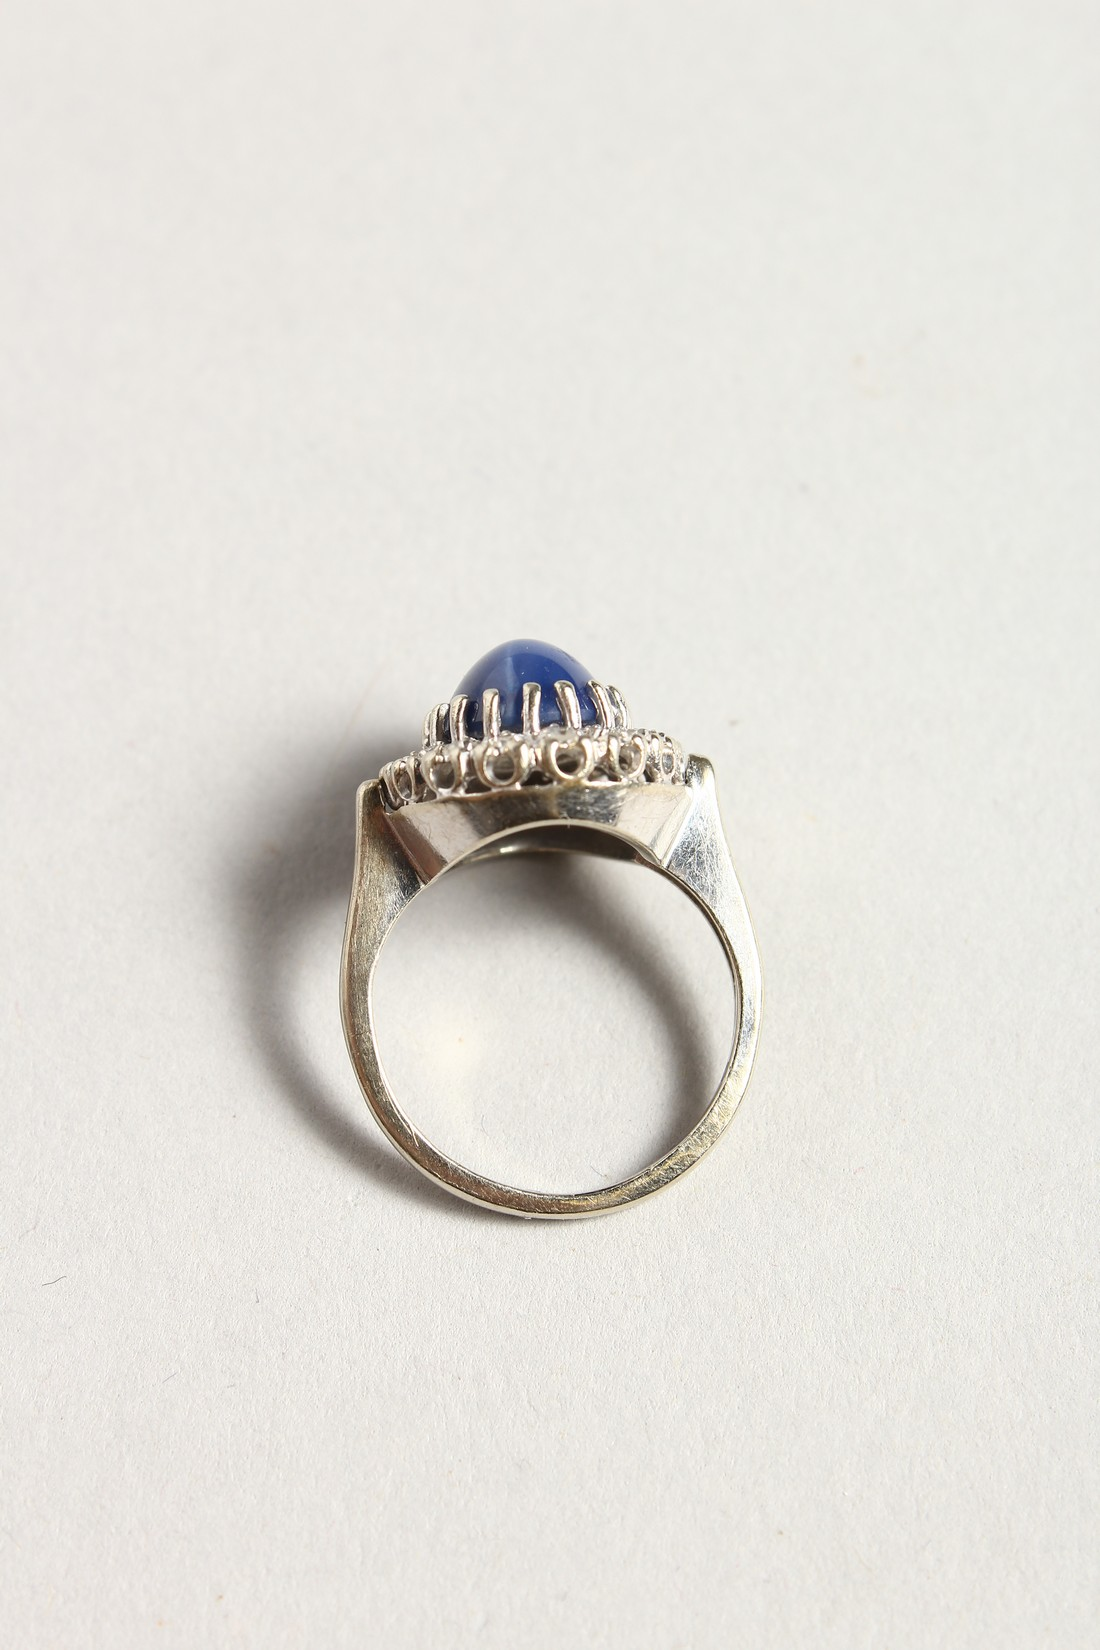 A GOLD CARBOUCHON SAPPHIRE AND DIAMOND RING - Image 3 of 4